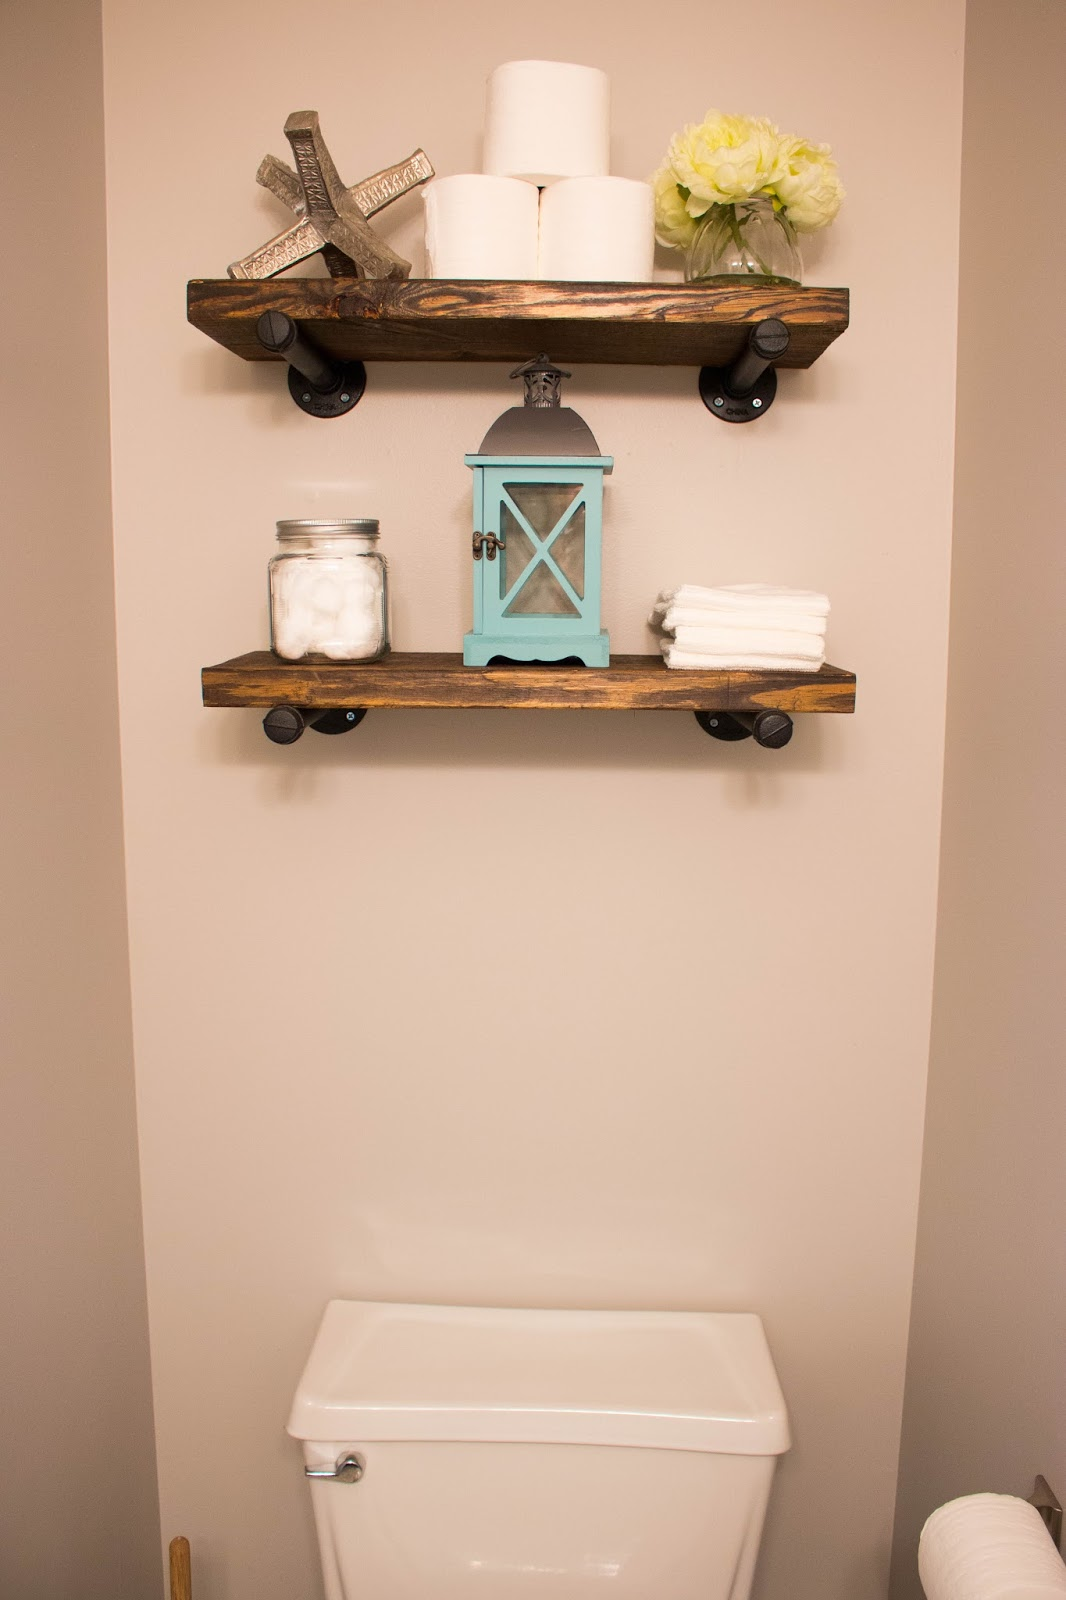 shelves diy bathroom floating